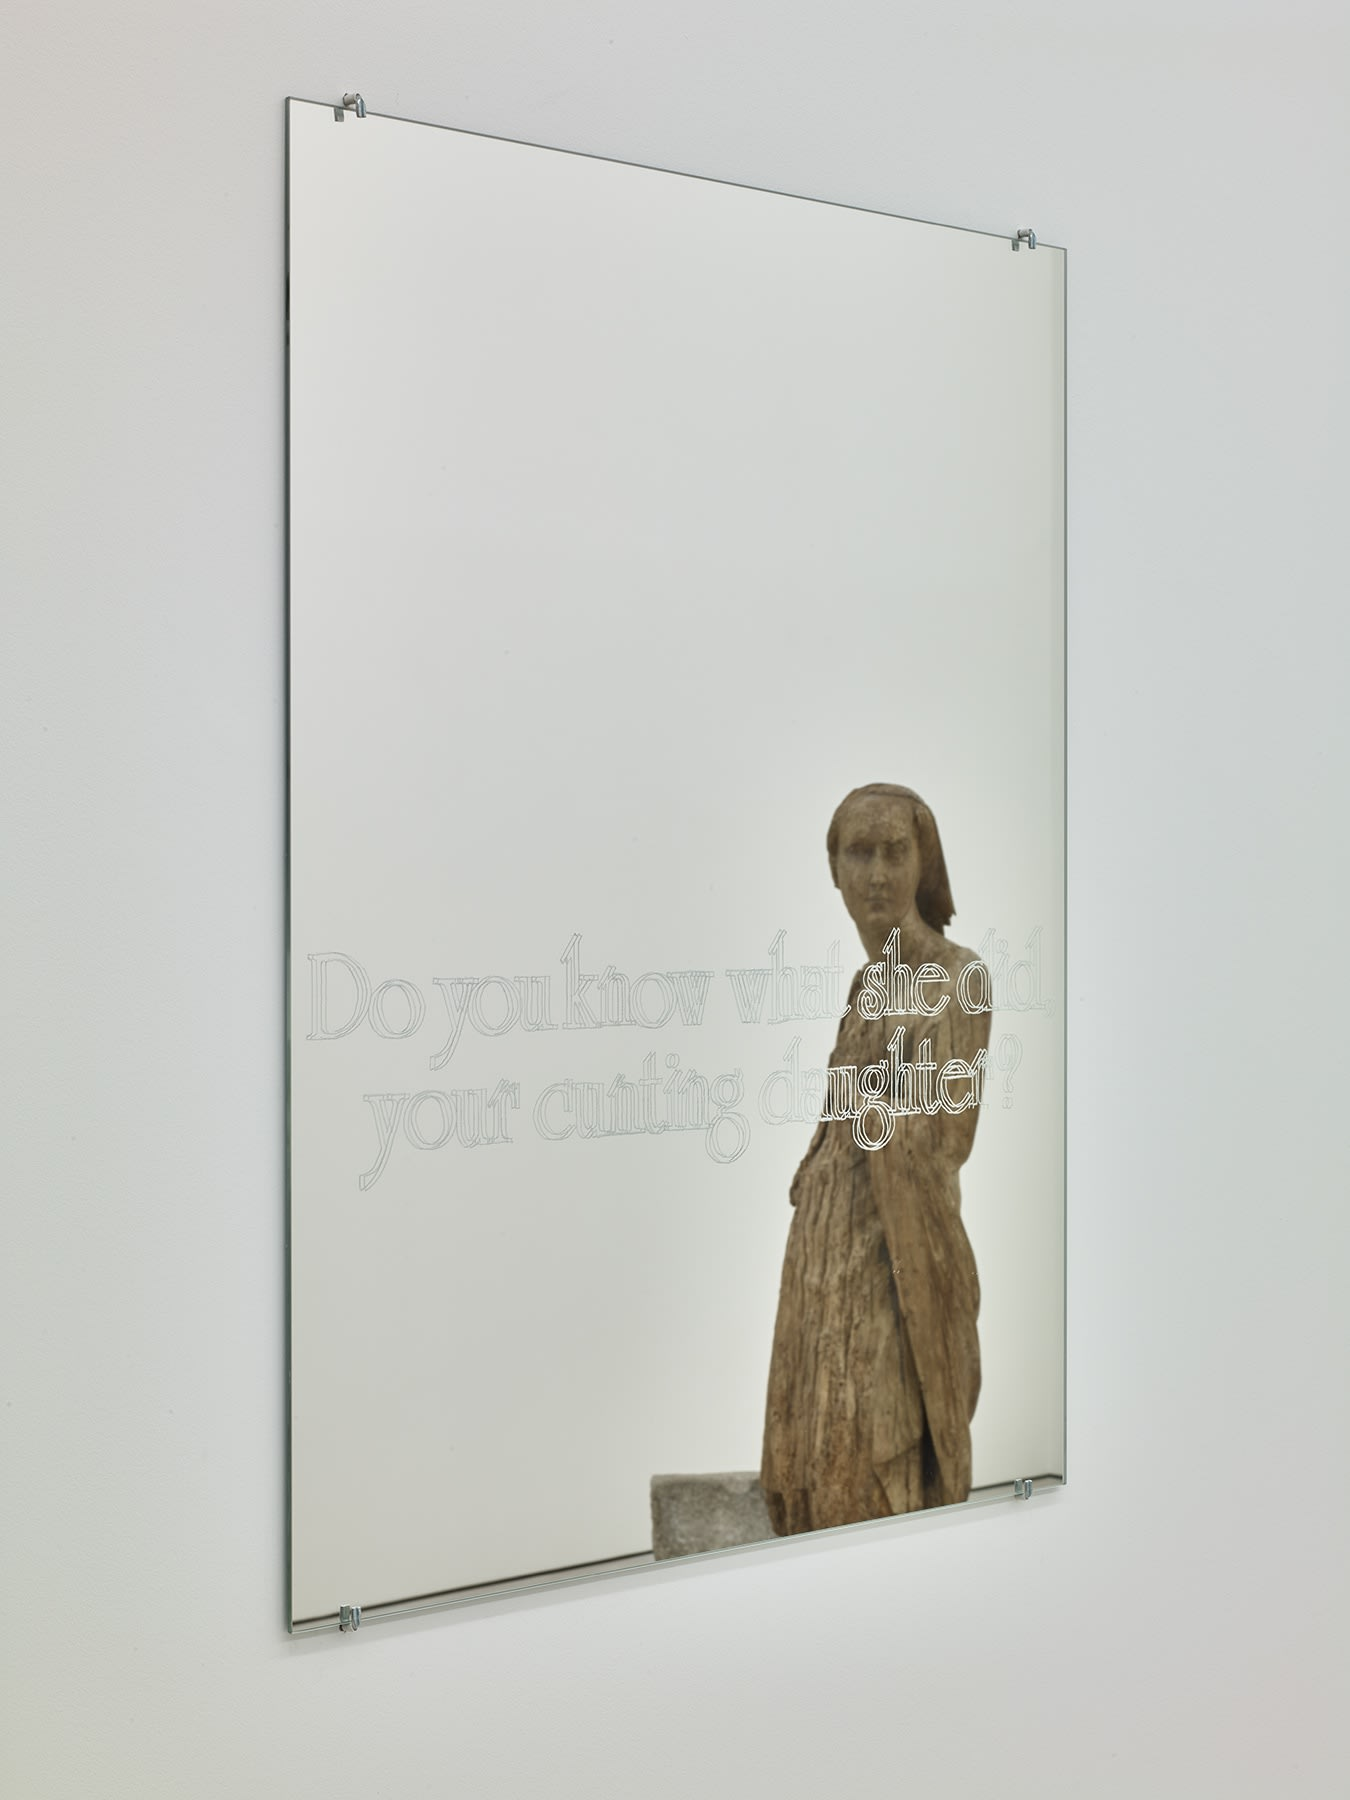 Image of mirror with translucent words reflecting a figurative statue facing the mirror.